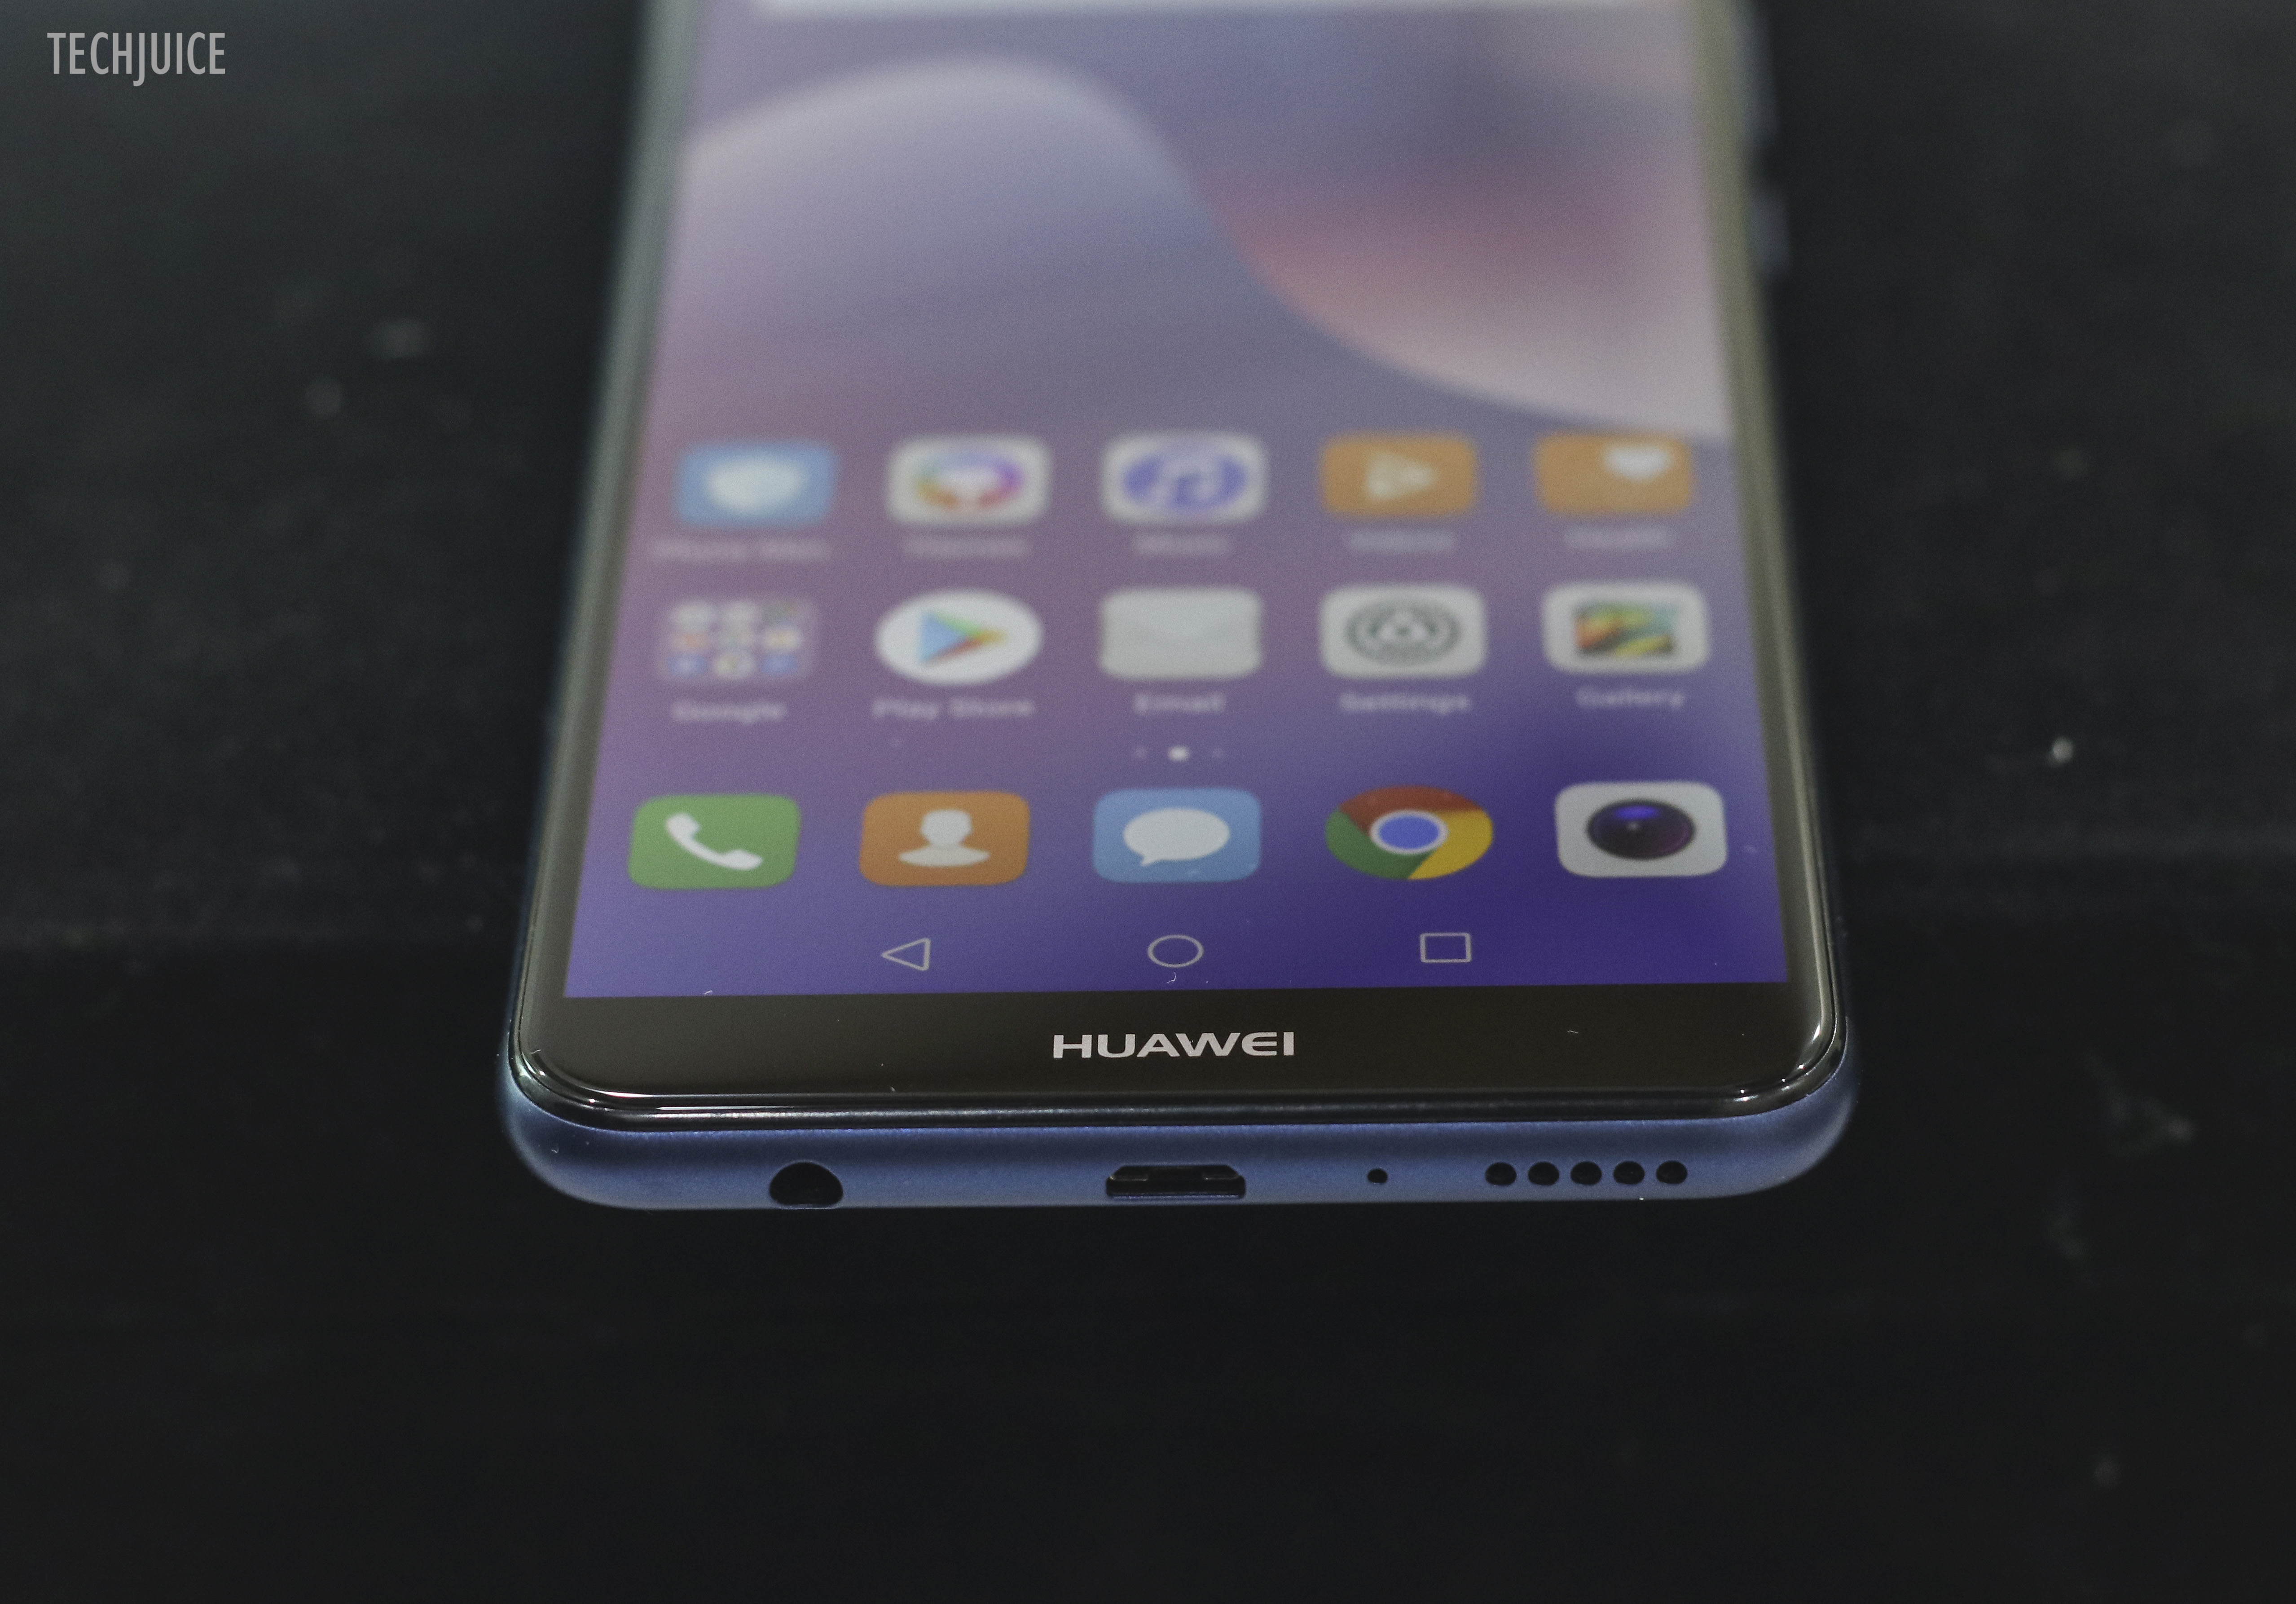 Huawei Y9 (2018) Review: 4 cameras, bezel-less display and a